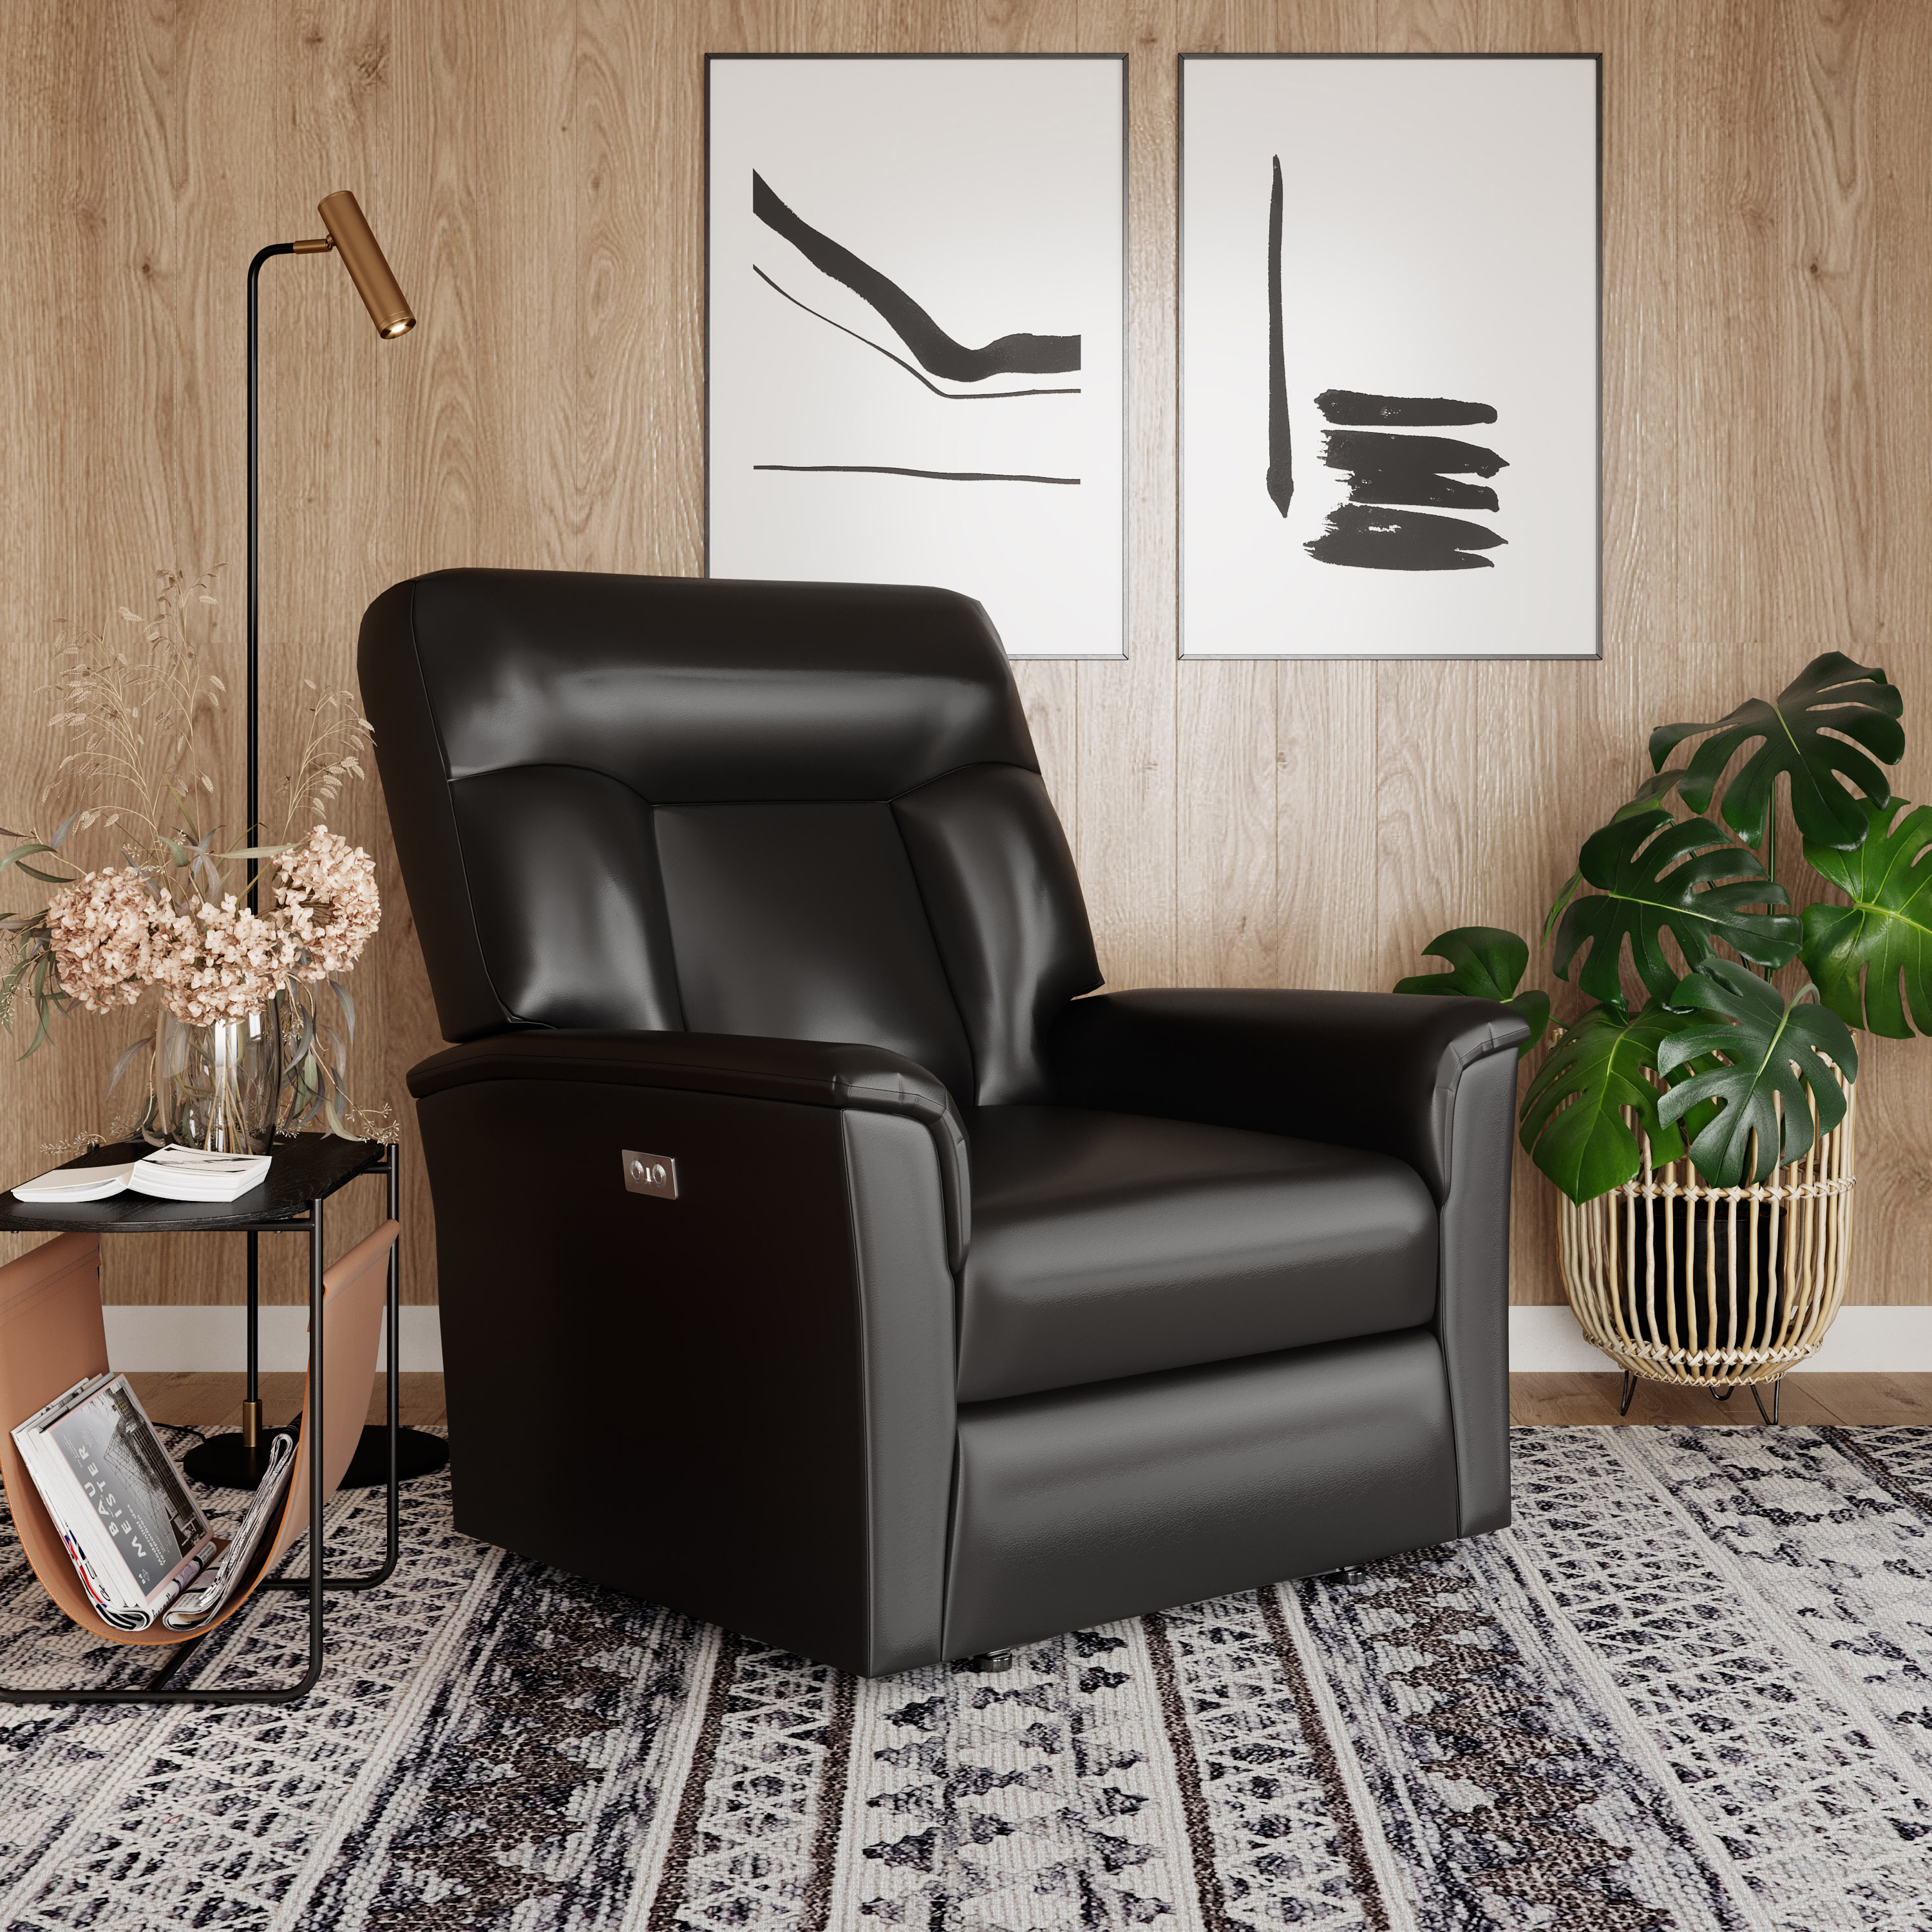 Lifestyle Solutions Relax A Lounger Nicolas Power Large Recliner, Faux Leather, Black